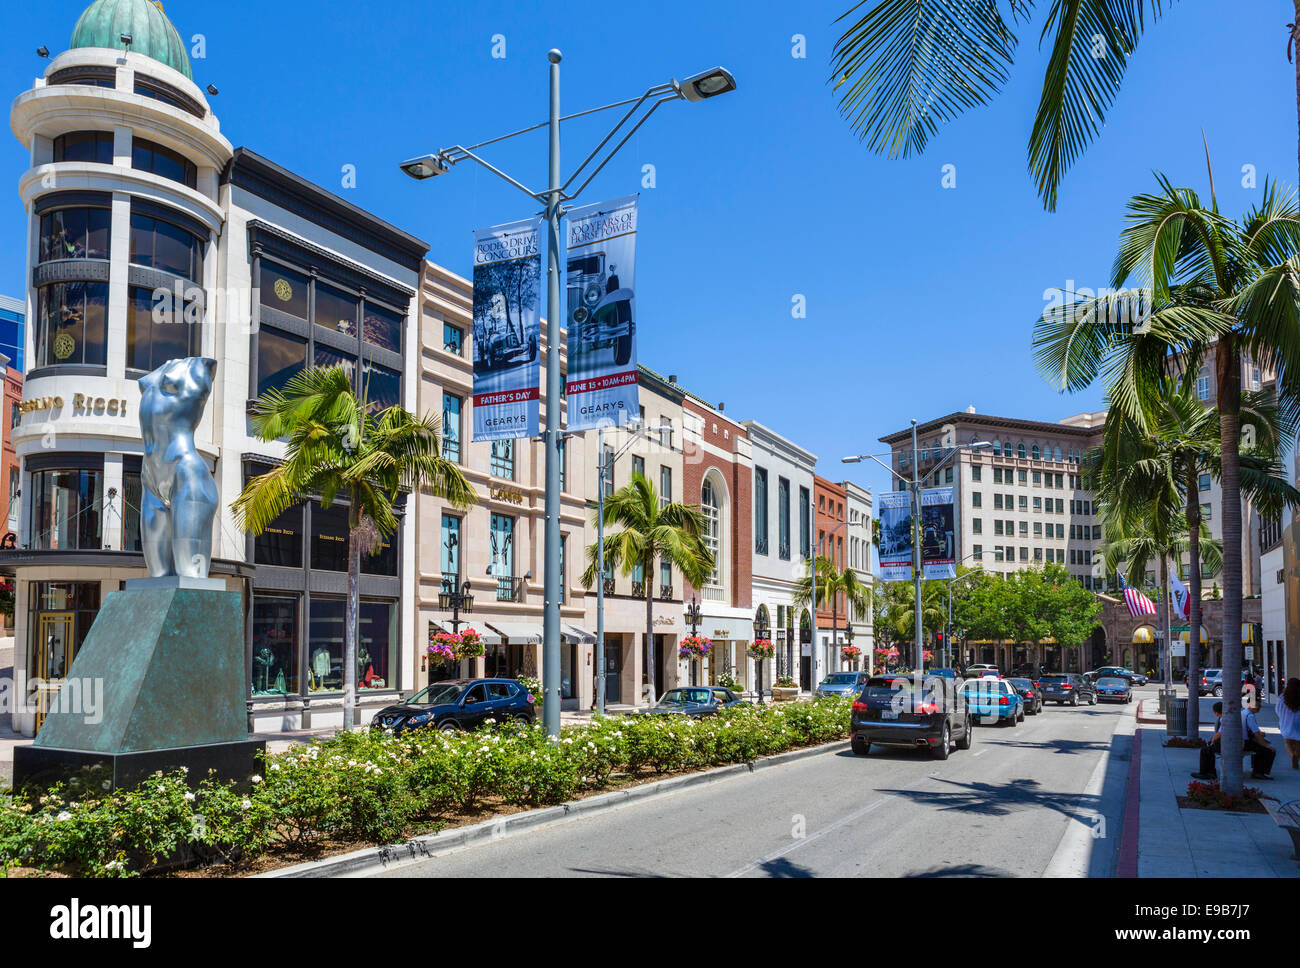 Rodeo Drive looking towards Beverly Wilshire Hotel, Beverly Hills, Los Angeles, California, USA - Stock Image